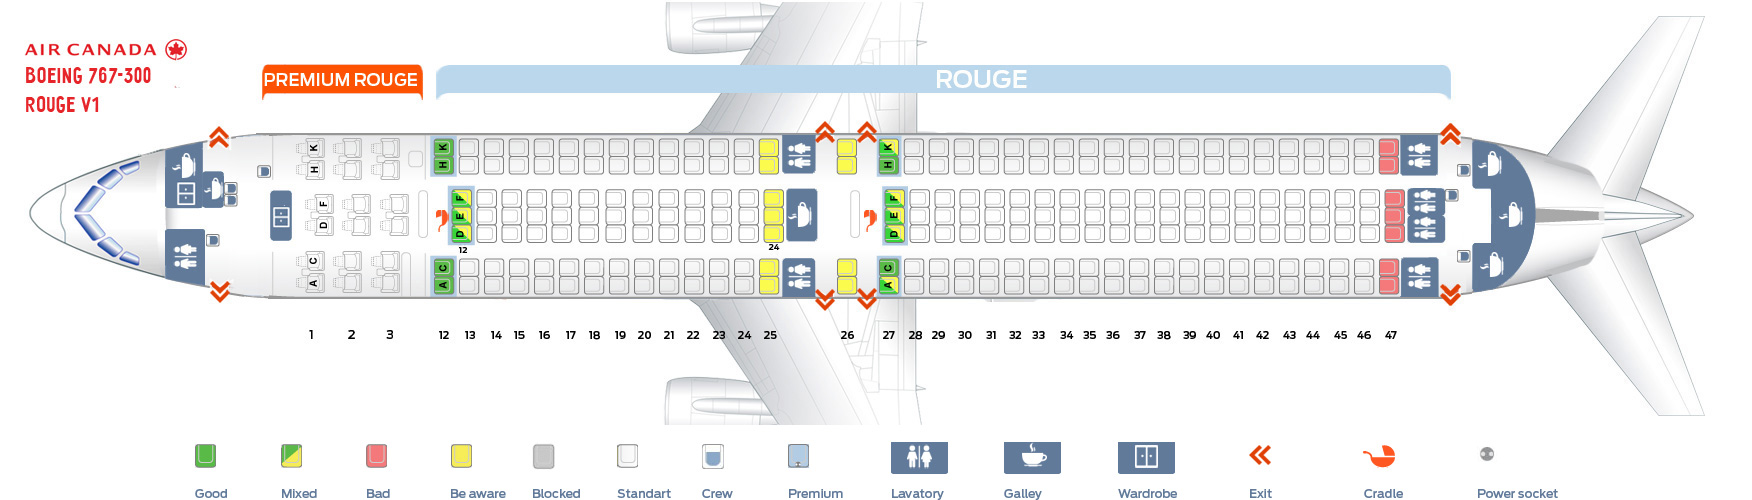 hight resolution of seat map air canada boeing 767 300 rouge version 1